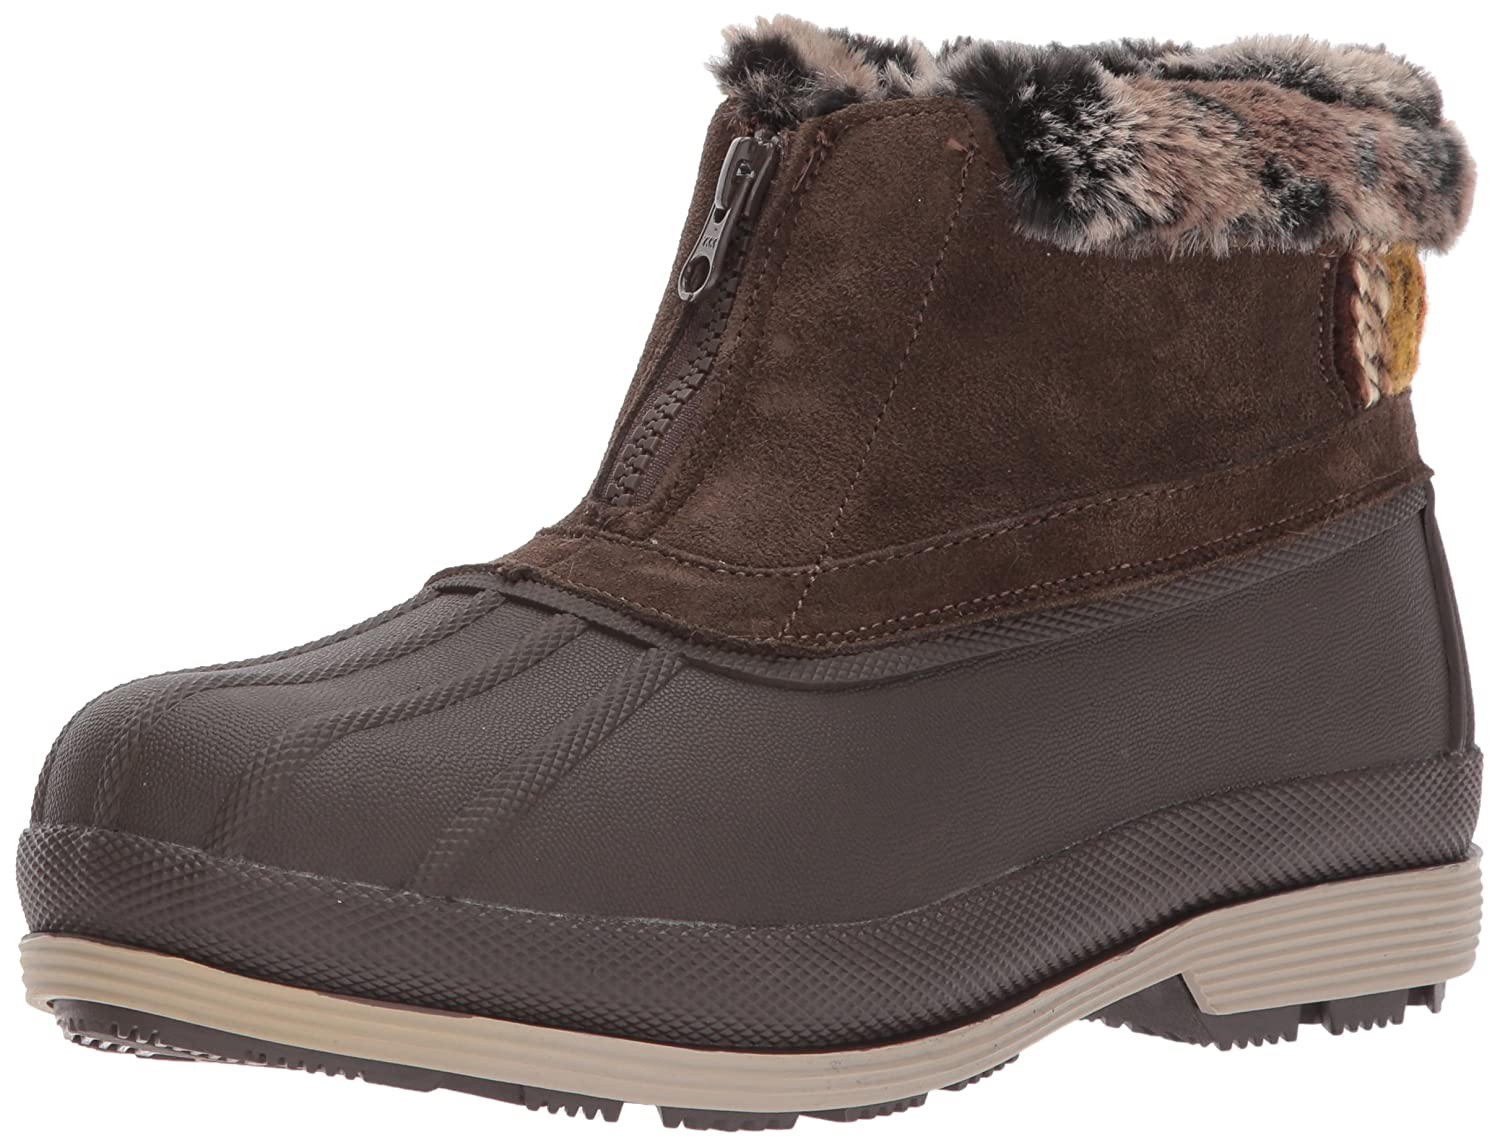 Propet Women's Lumi Ankle Zip Snow Boot B01MRRYZAR 6.5 B(M) US|Brown